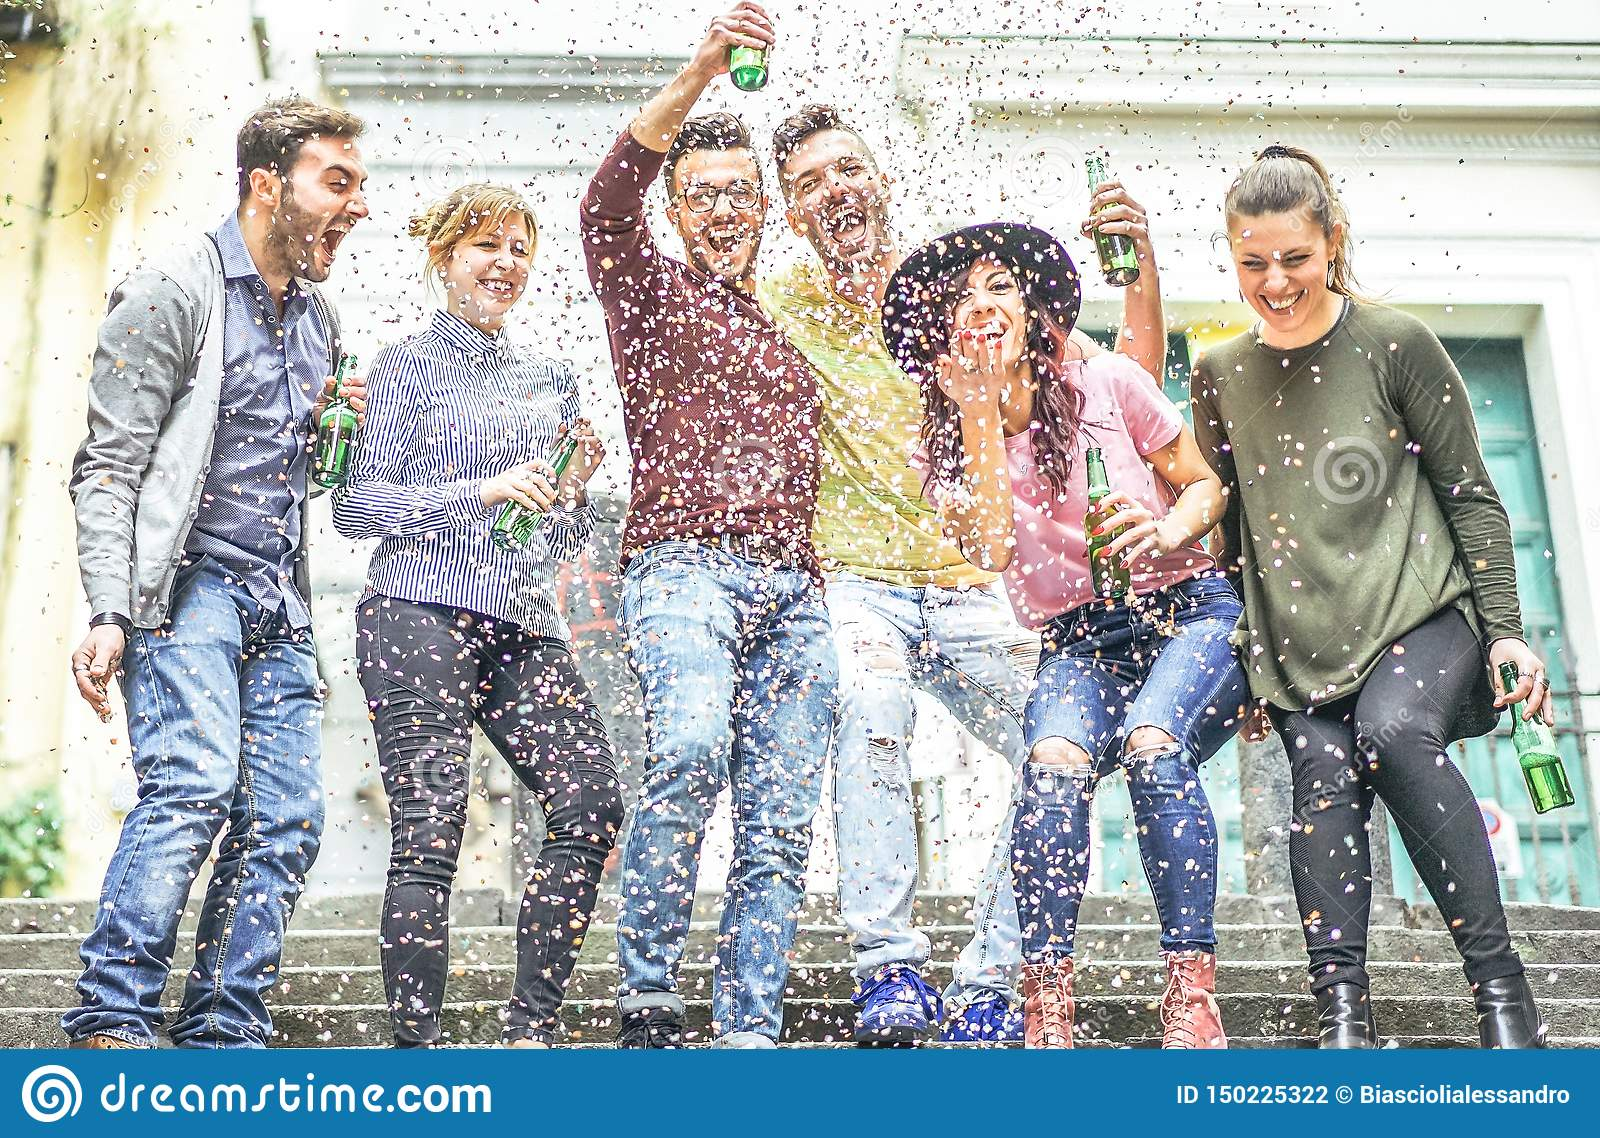 Group of happy friends making party on a urban area - Young people having fun laughing together and drinking beers outdoor